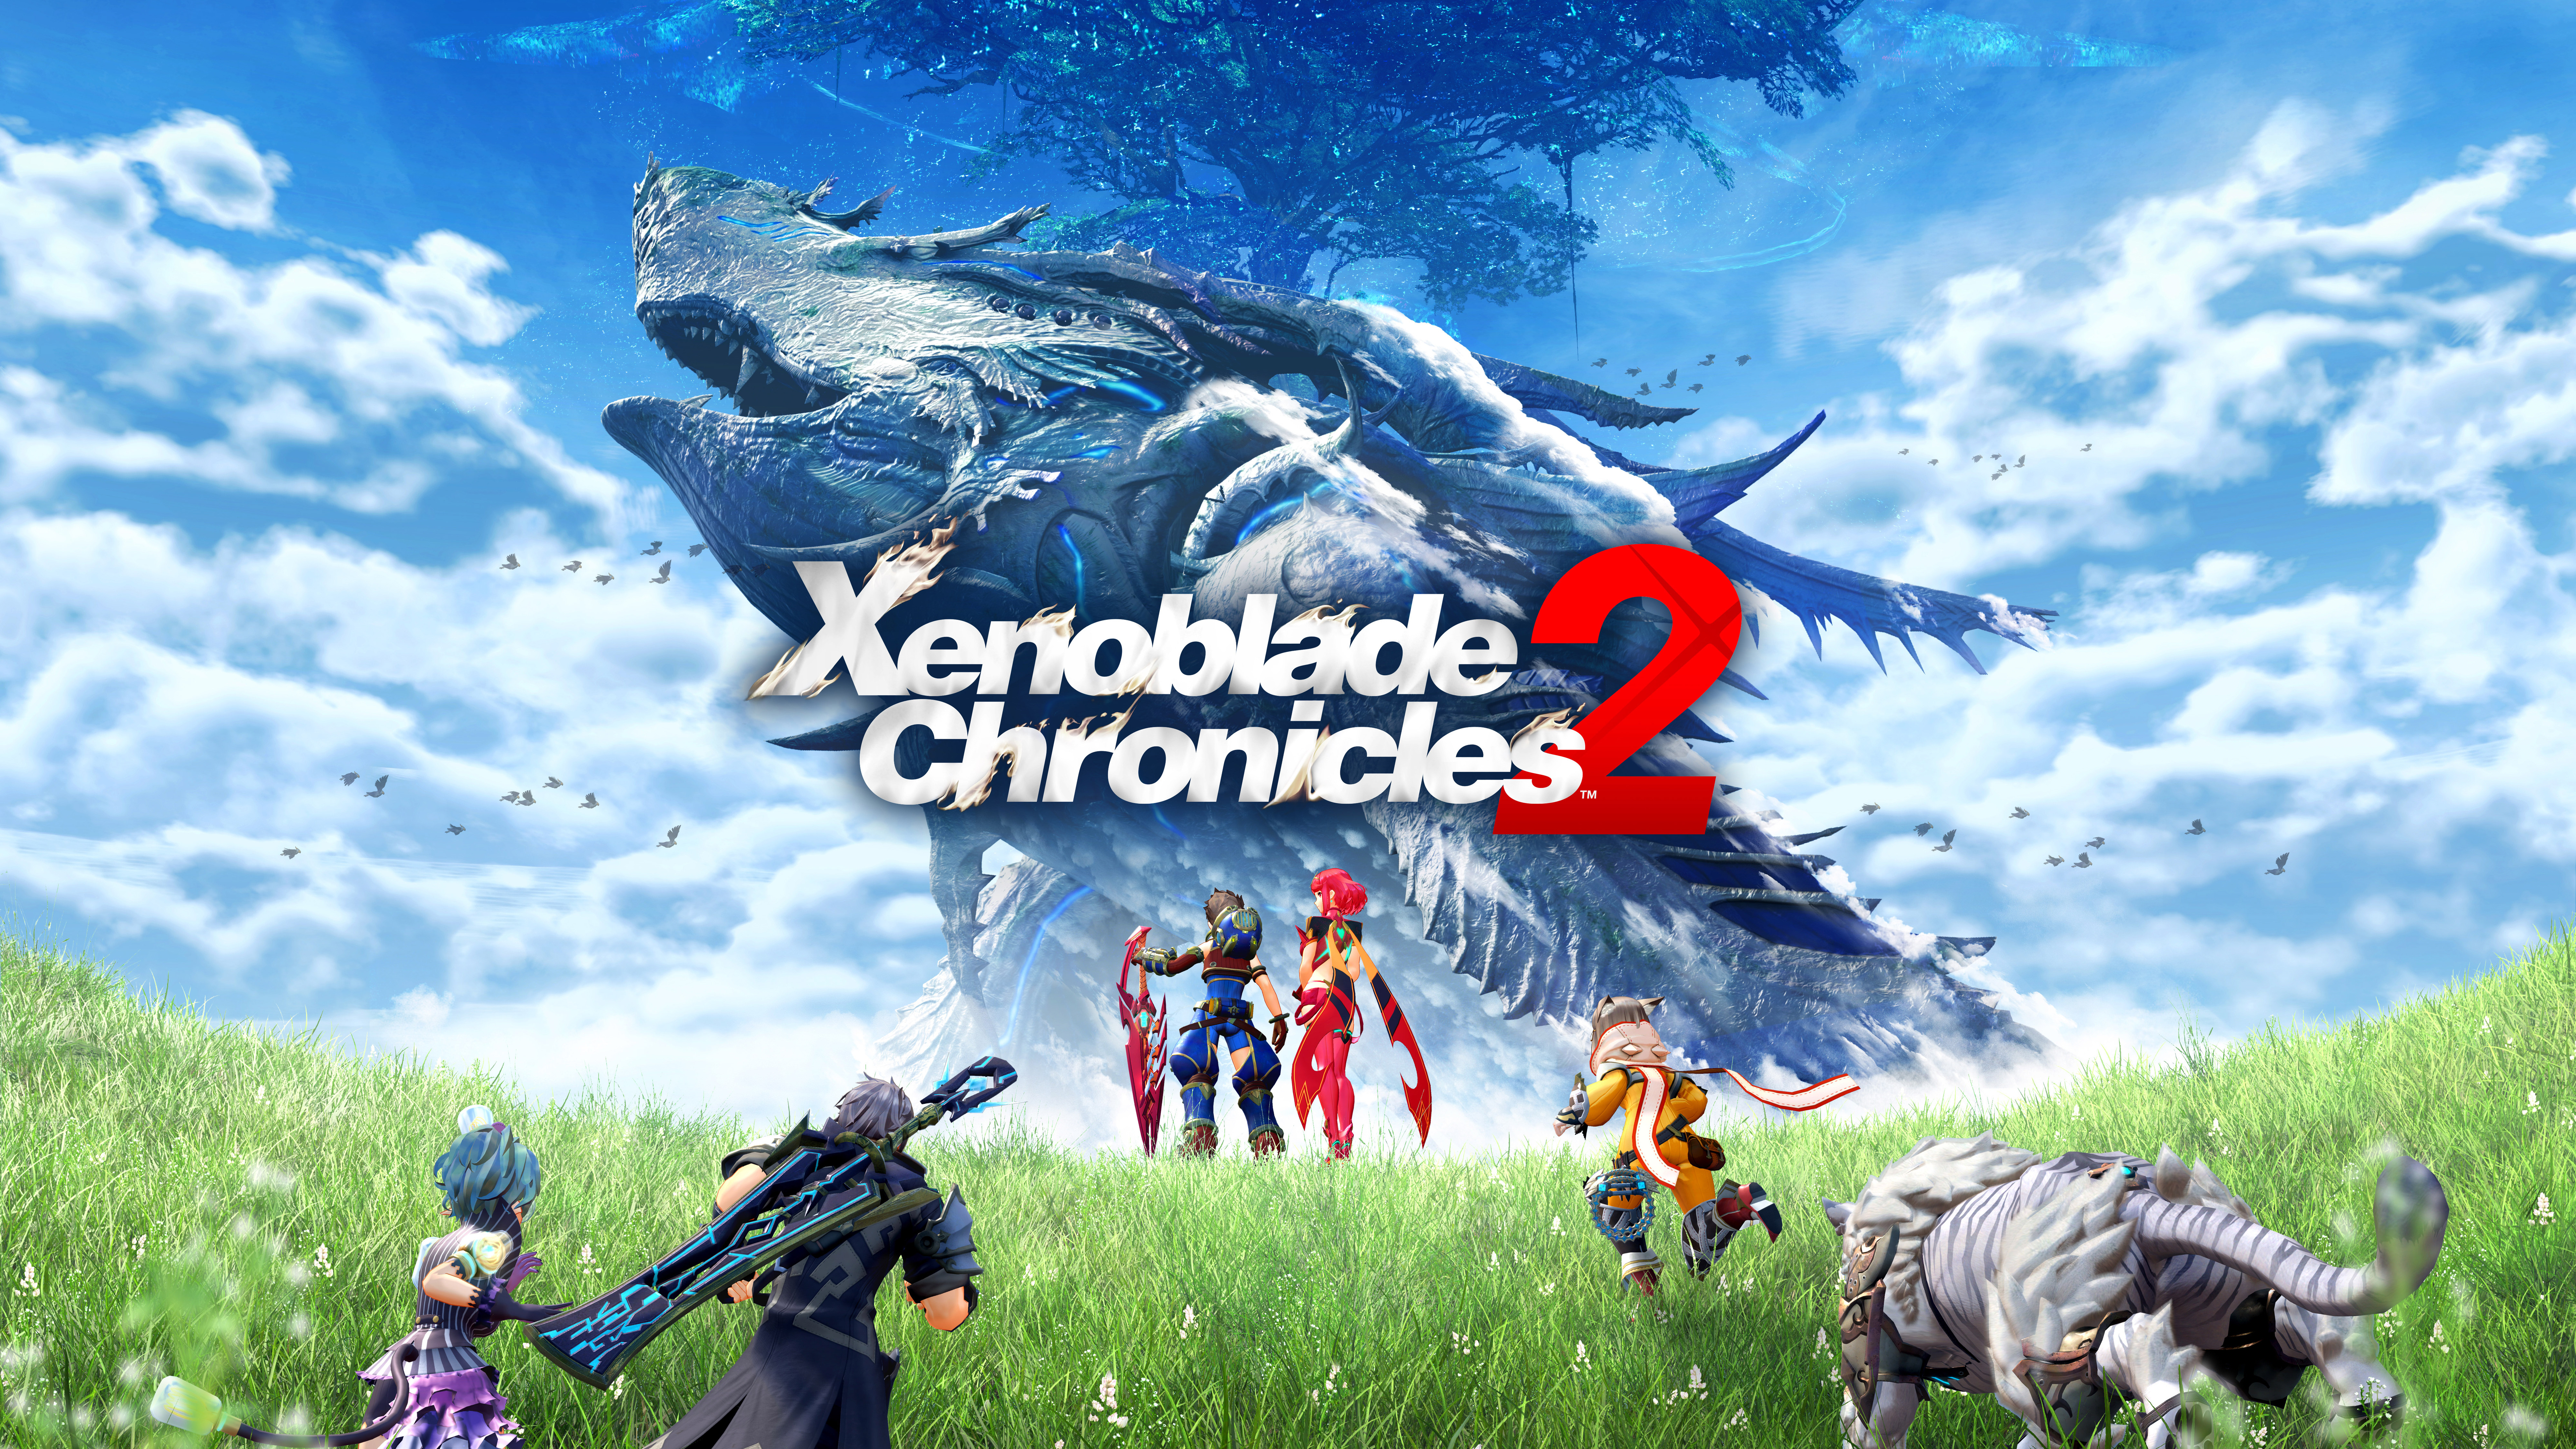 7680x4320 Xenoblade Chronicles 2 8k Hd 4k Wallpapers Images